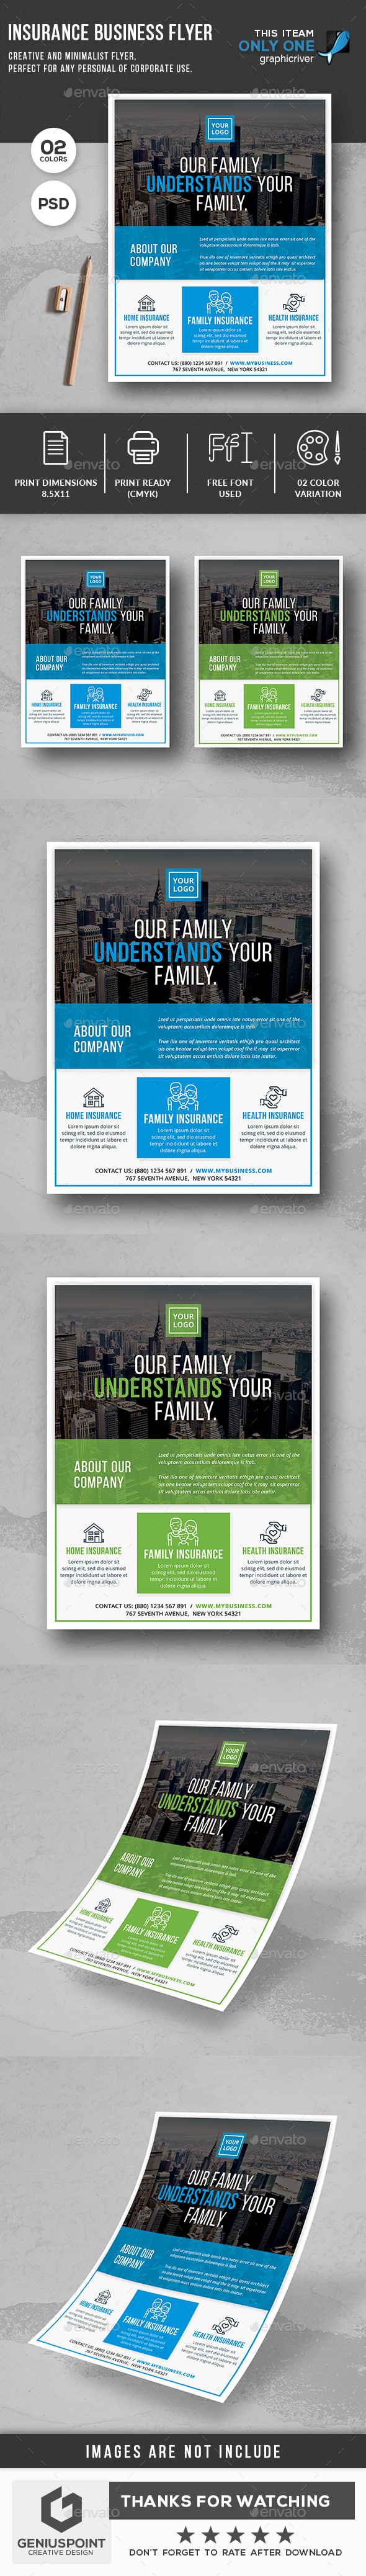 Insurance Business Flyer - Corporate Flyers